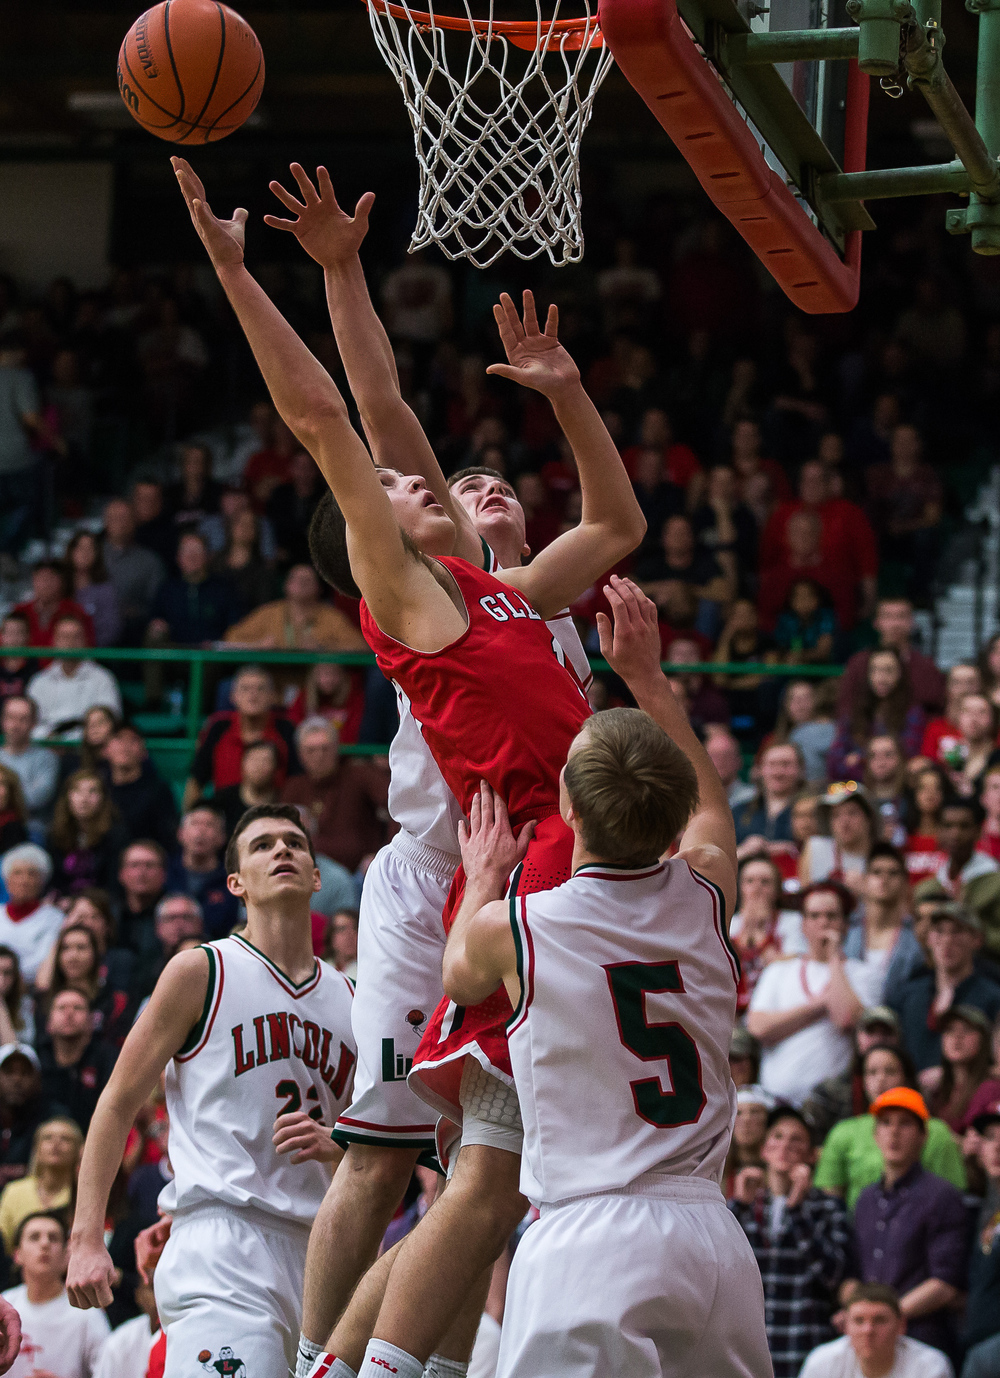 Glenwood's Joel Alexander (15) puts in a basket against Lincoln's Isaiah Bowers (33) in the second half at Roy S. Anderson Gymnasium, Friday, Feb. 27, 2015, in Lincoln, Ill. Justin L. Fowler/The State Journal-Register